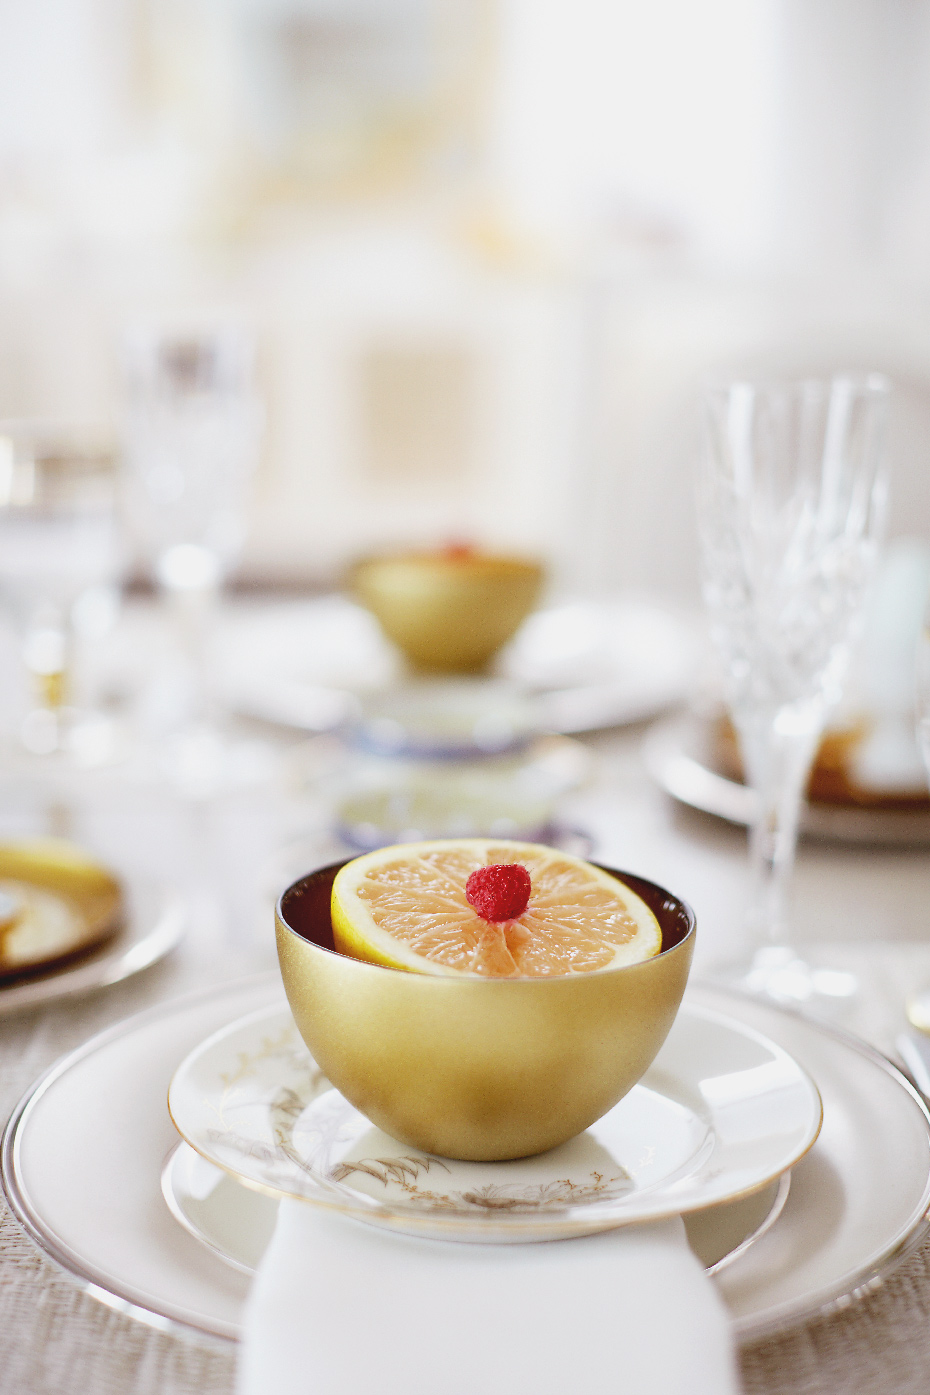 Stacey Van Berkel Photography I Elegant breakfast of raspberry topped grapefruit